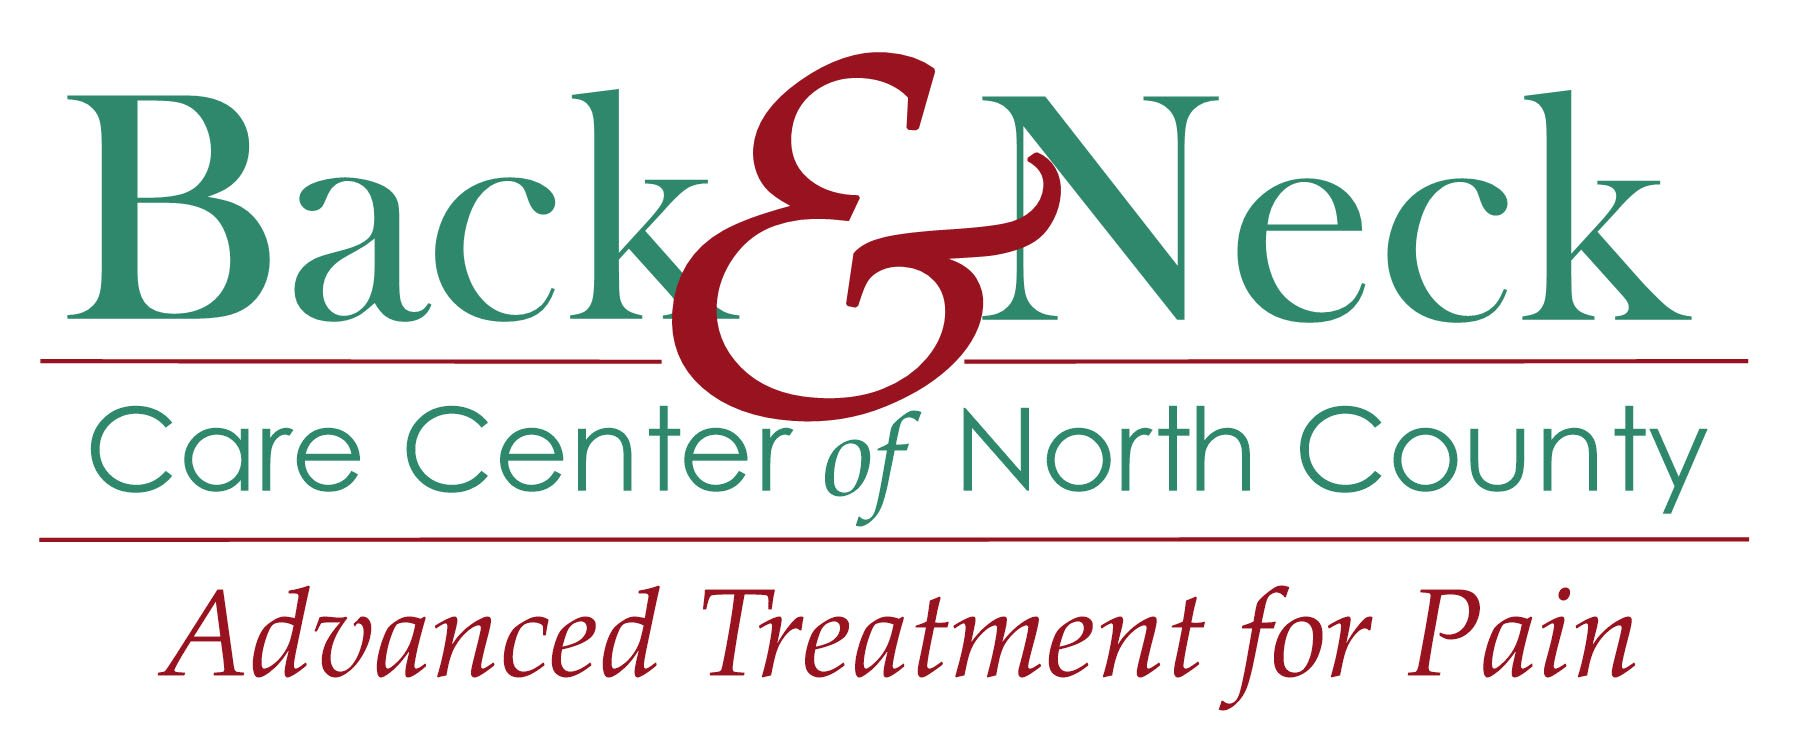 Back & Neck Care Center - Logo